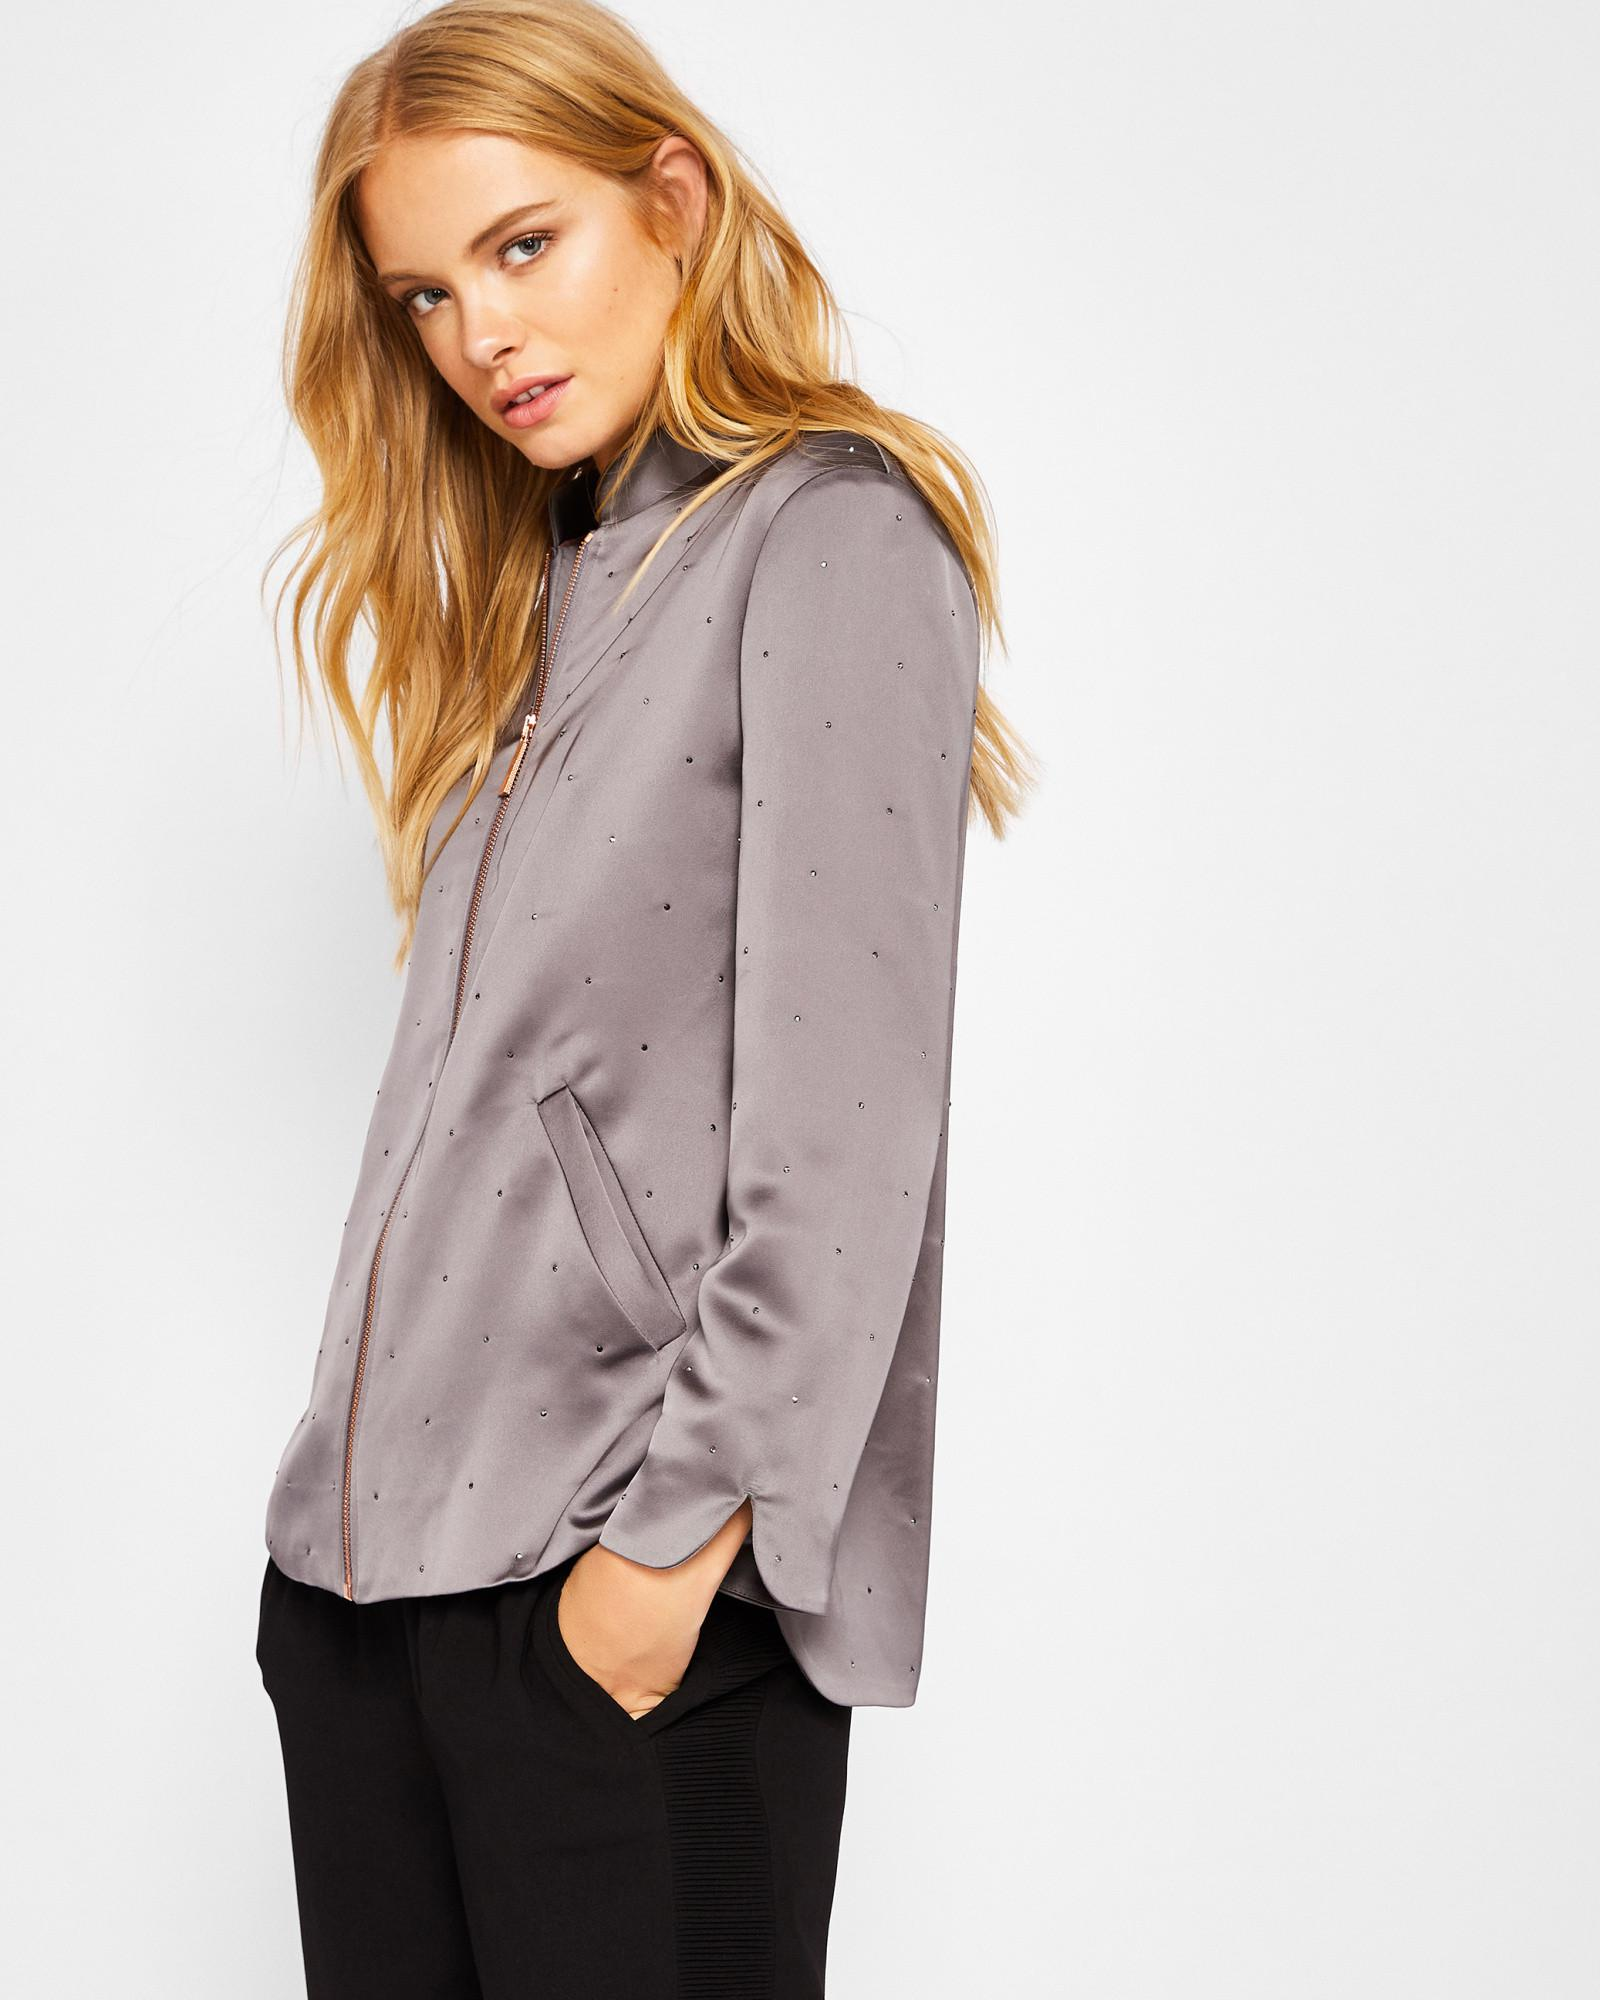 36146897c Ted Baker Embellished Bomber Jacket in Gray - Lyst